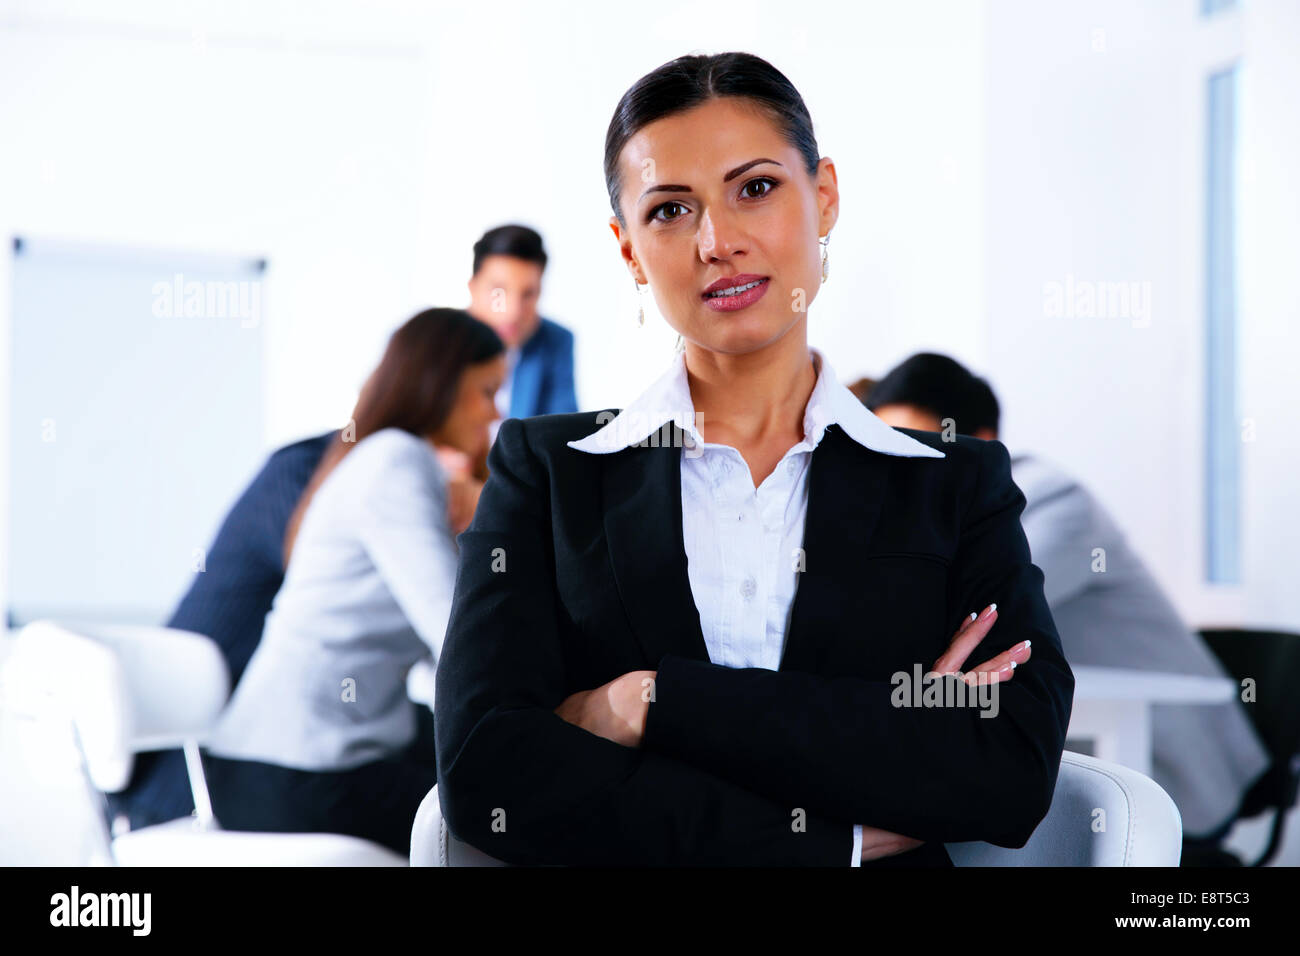 Businesswoman with arms folded standing in front of a metting - Stock Image